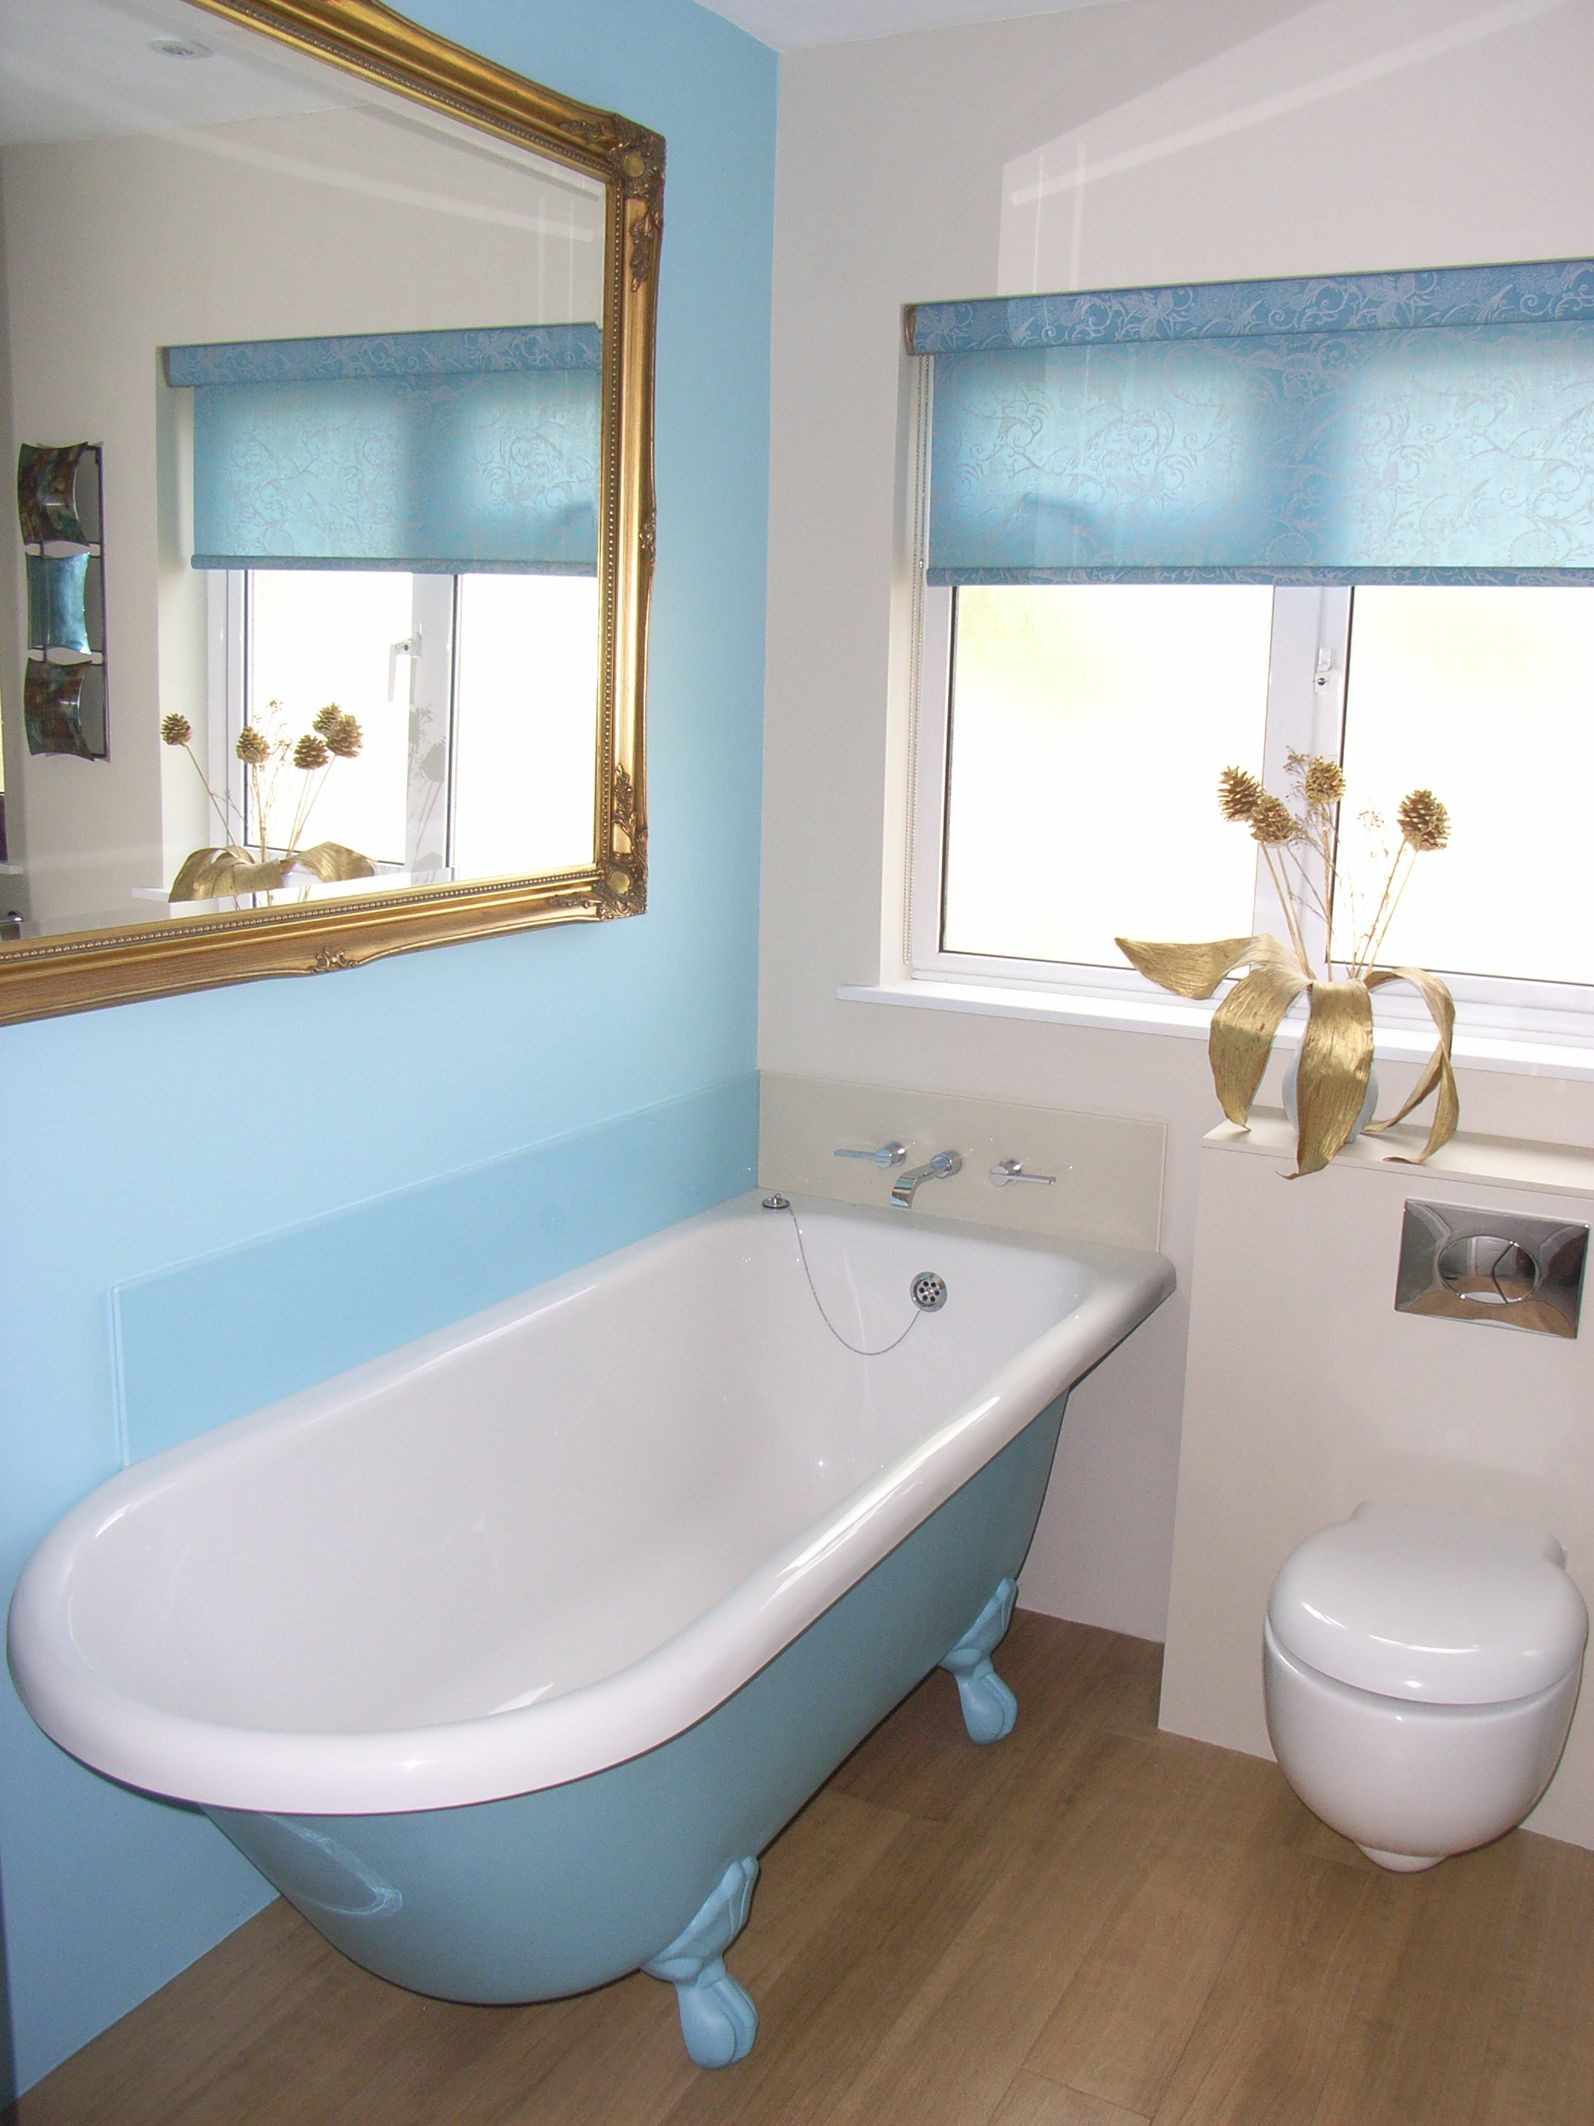 Traditional Freestanding Bath, Hand Painted Blue With Matching Walls And  Glass Splashback. Wall Hung